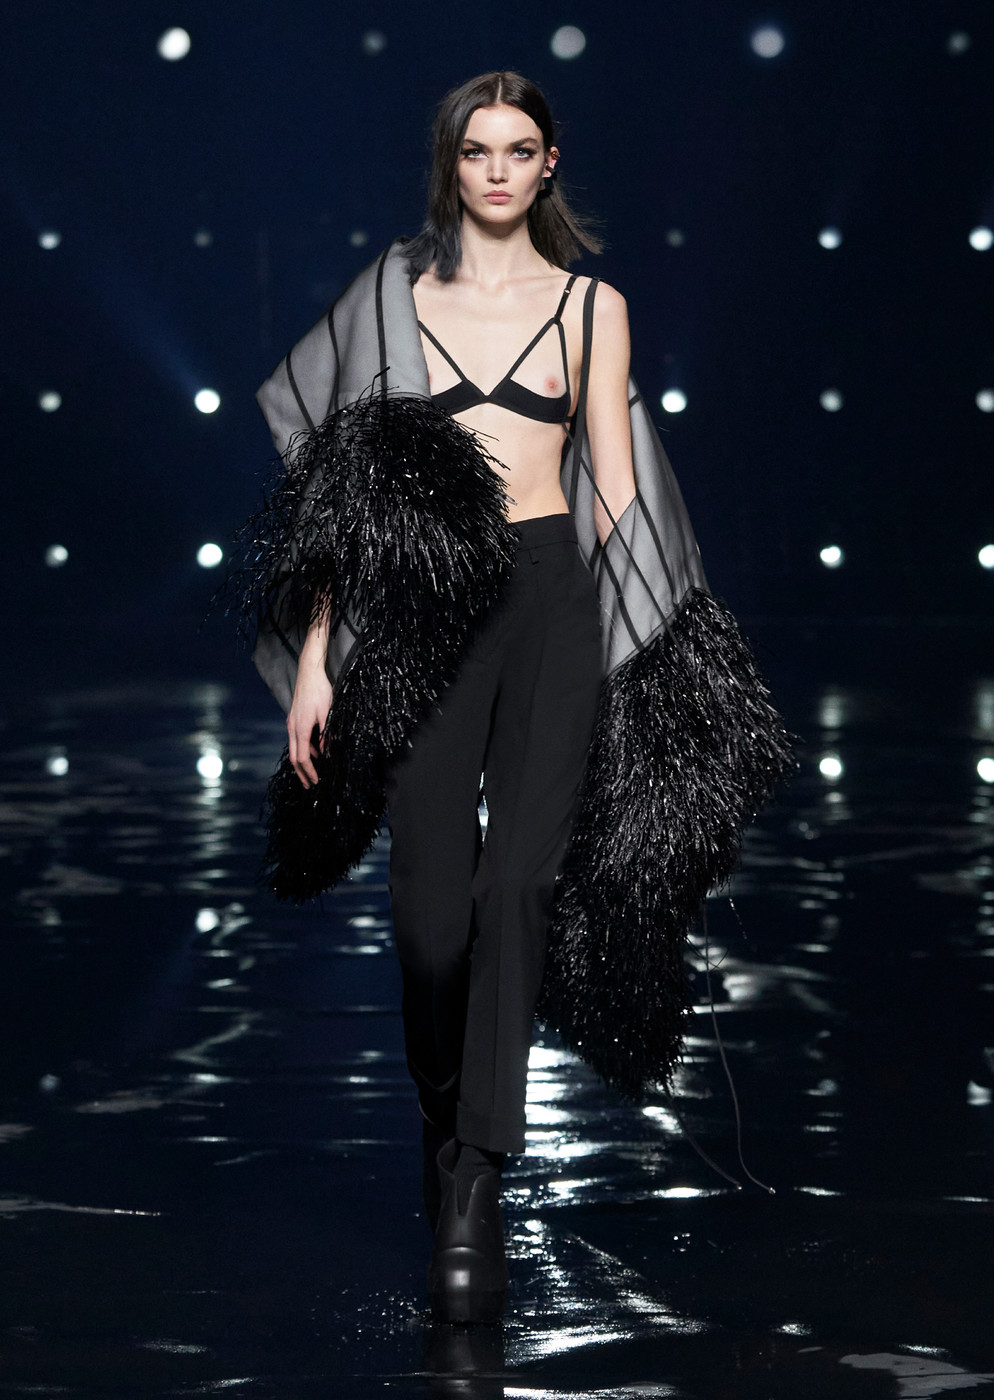 Givenchy Fall 20 Runway Pictures   Livingly